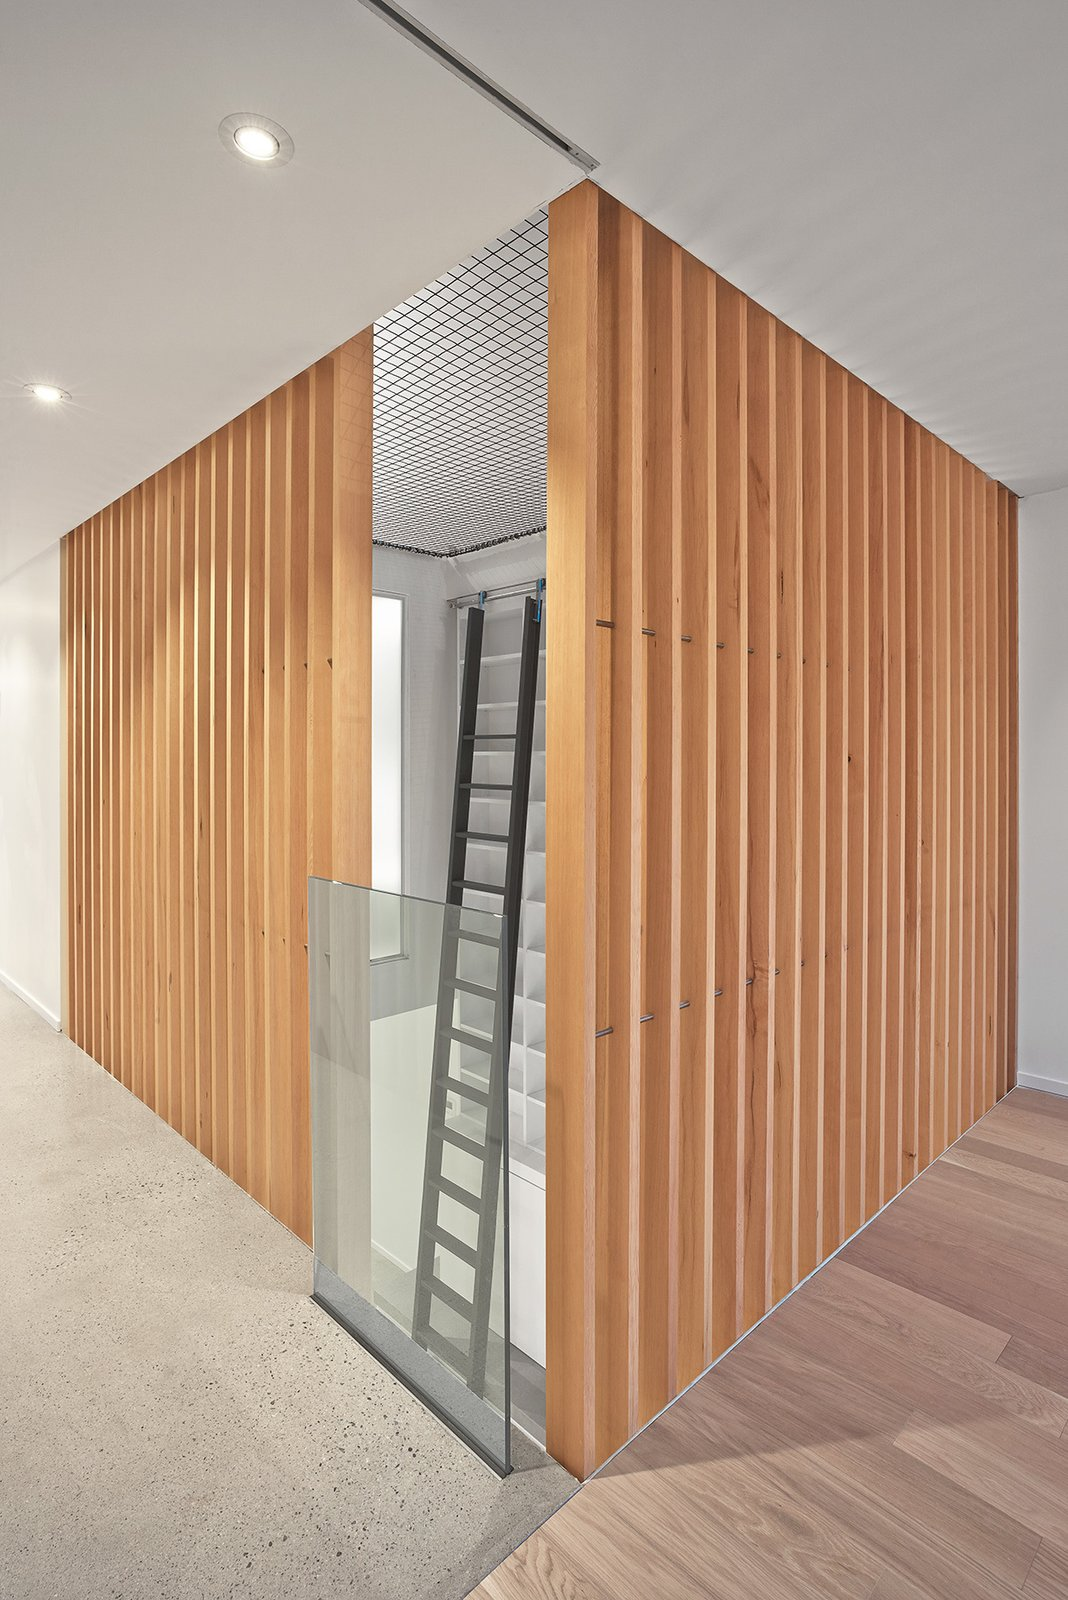 Photo 4 of 5 in Atrium House by RobitailleCurtis